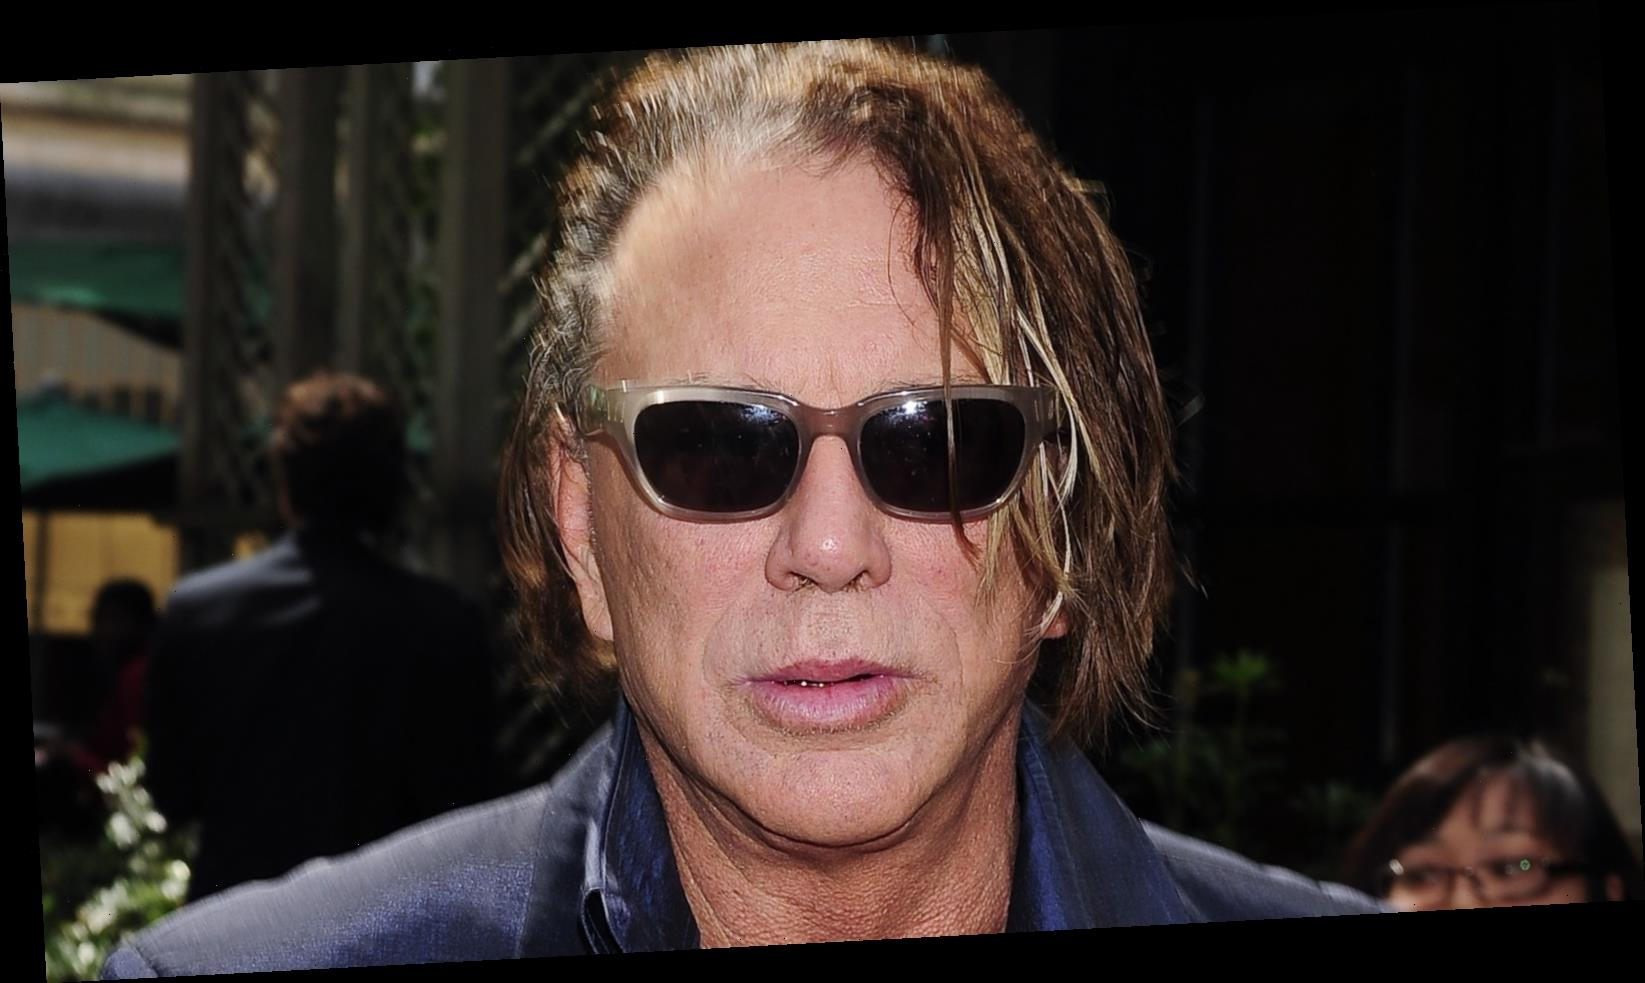 Mickey Rourke's net worth: How much money does the famous actor have?